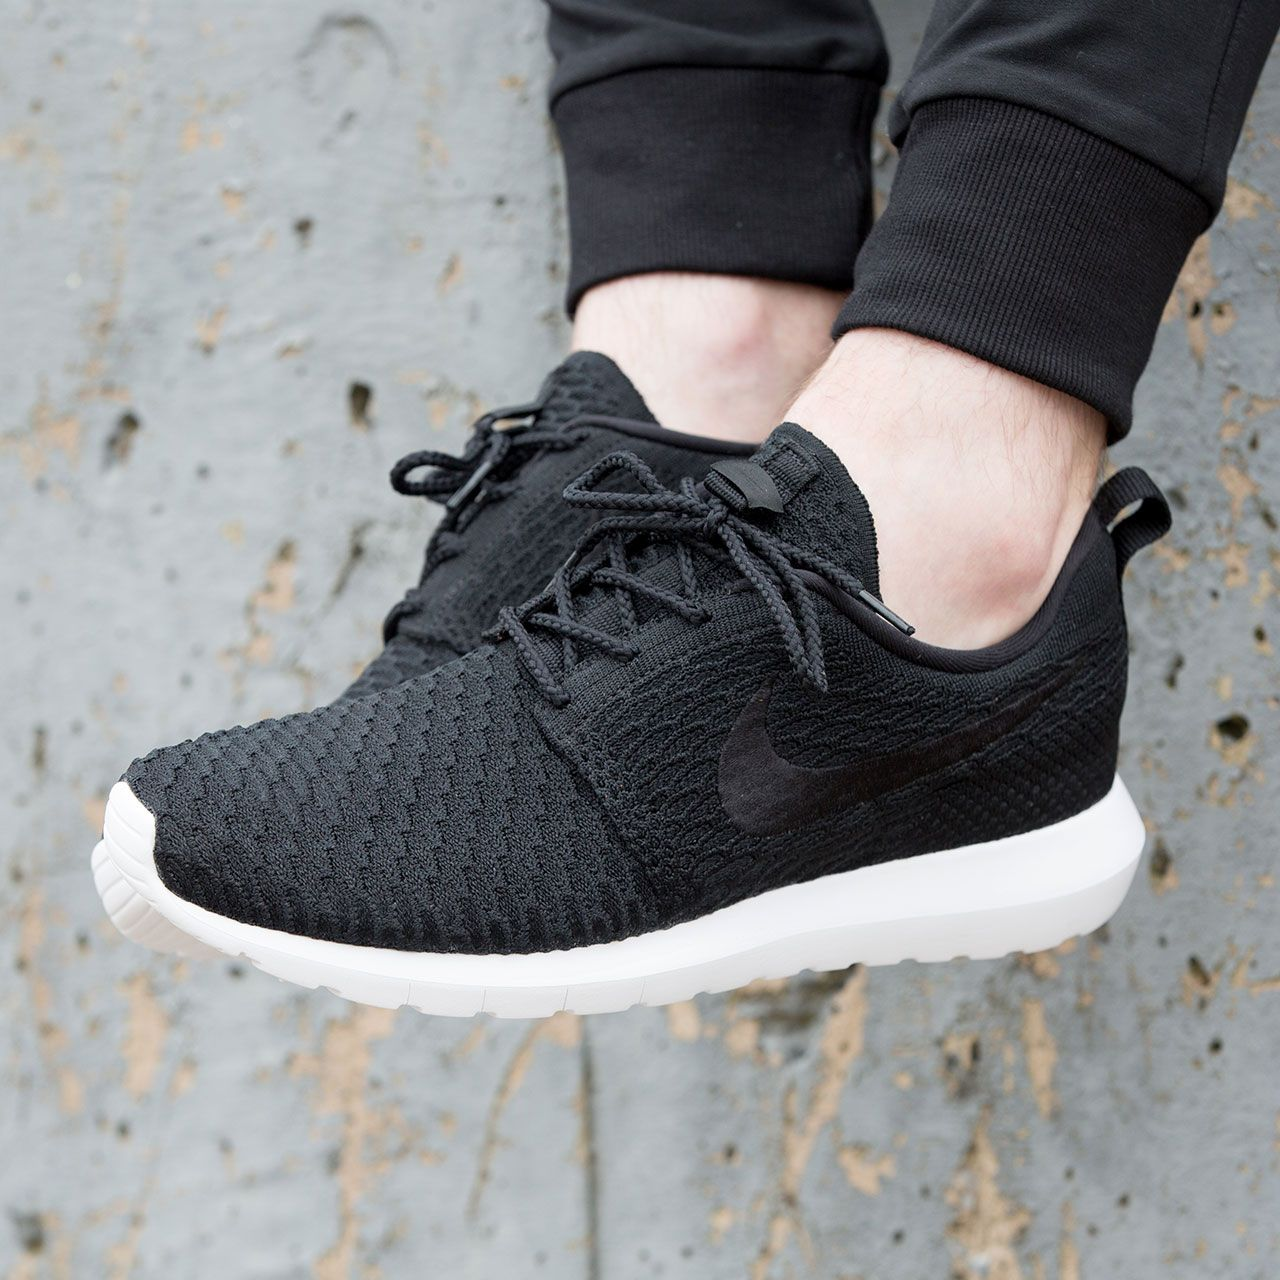 new concept 59f46 e1bb1 Casual styling with the Nike Roshe NM Flyknit Trainer in Black   White.